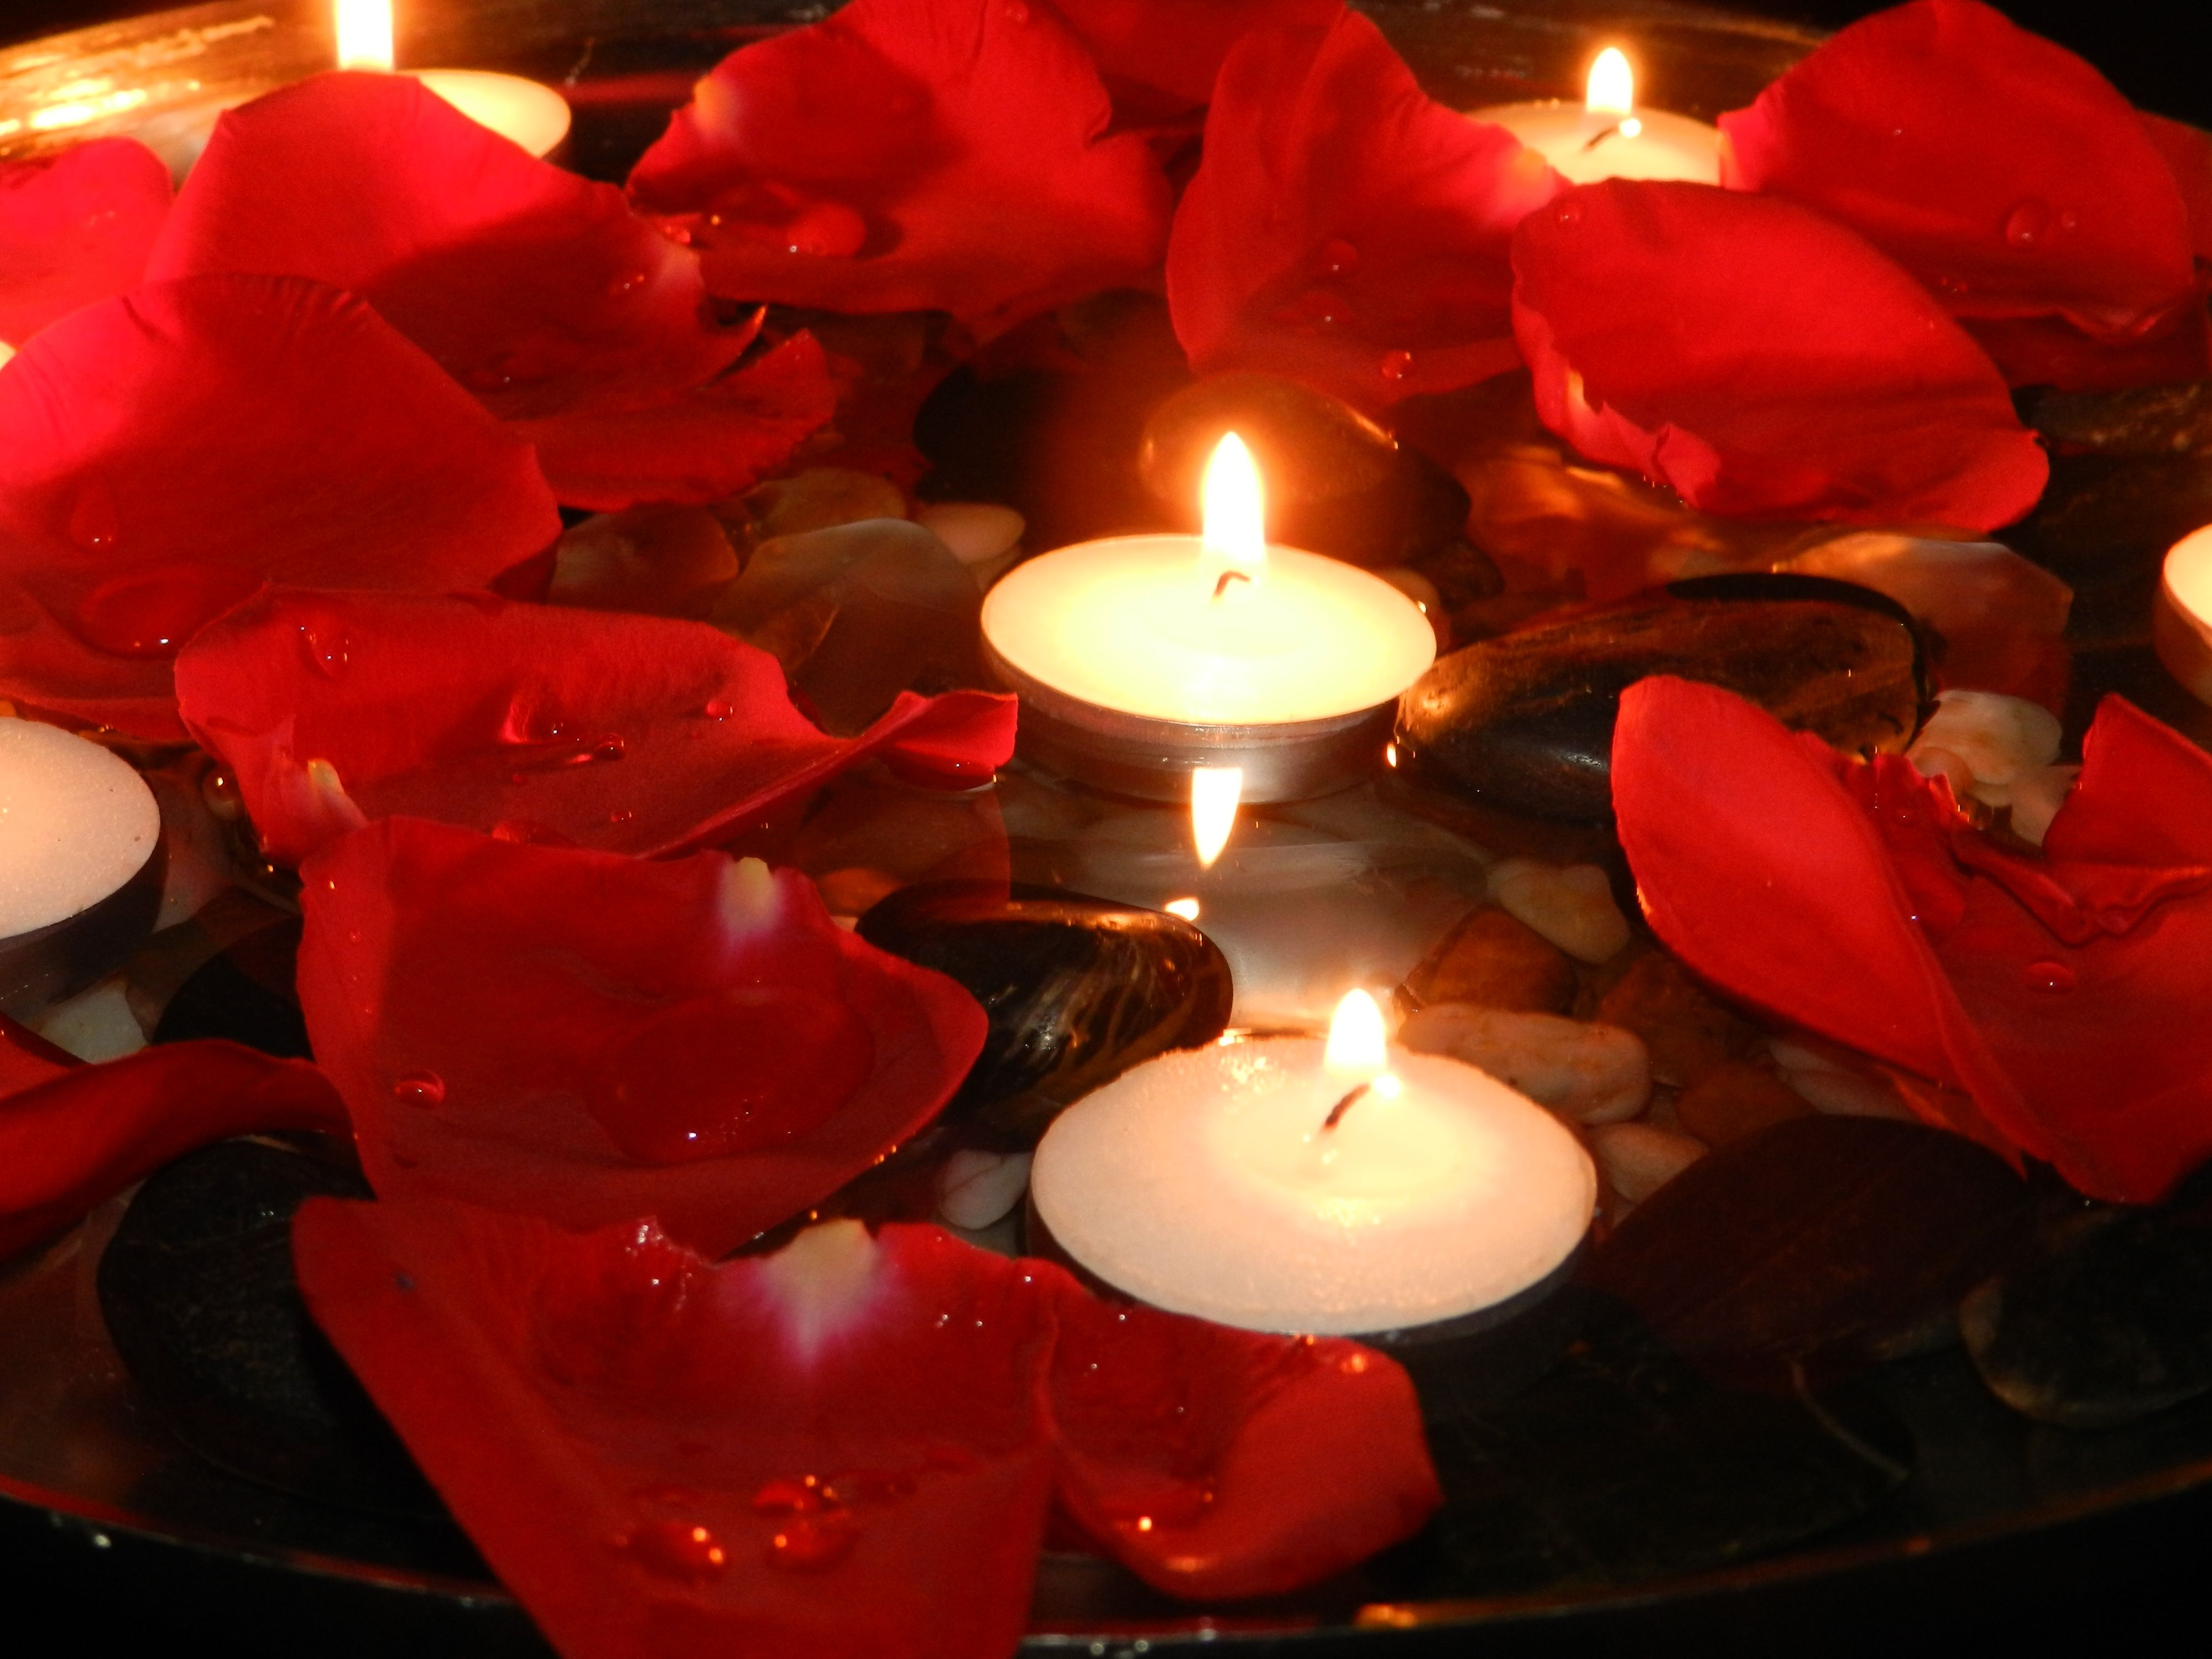 Pin By Ayat Murad On To File Candle Night Candles Wallpaper Rose Petal Candle